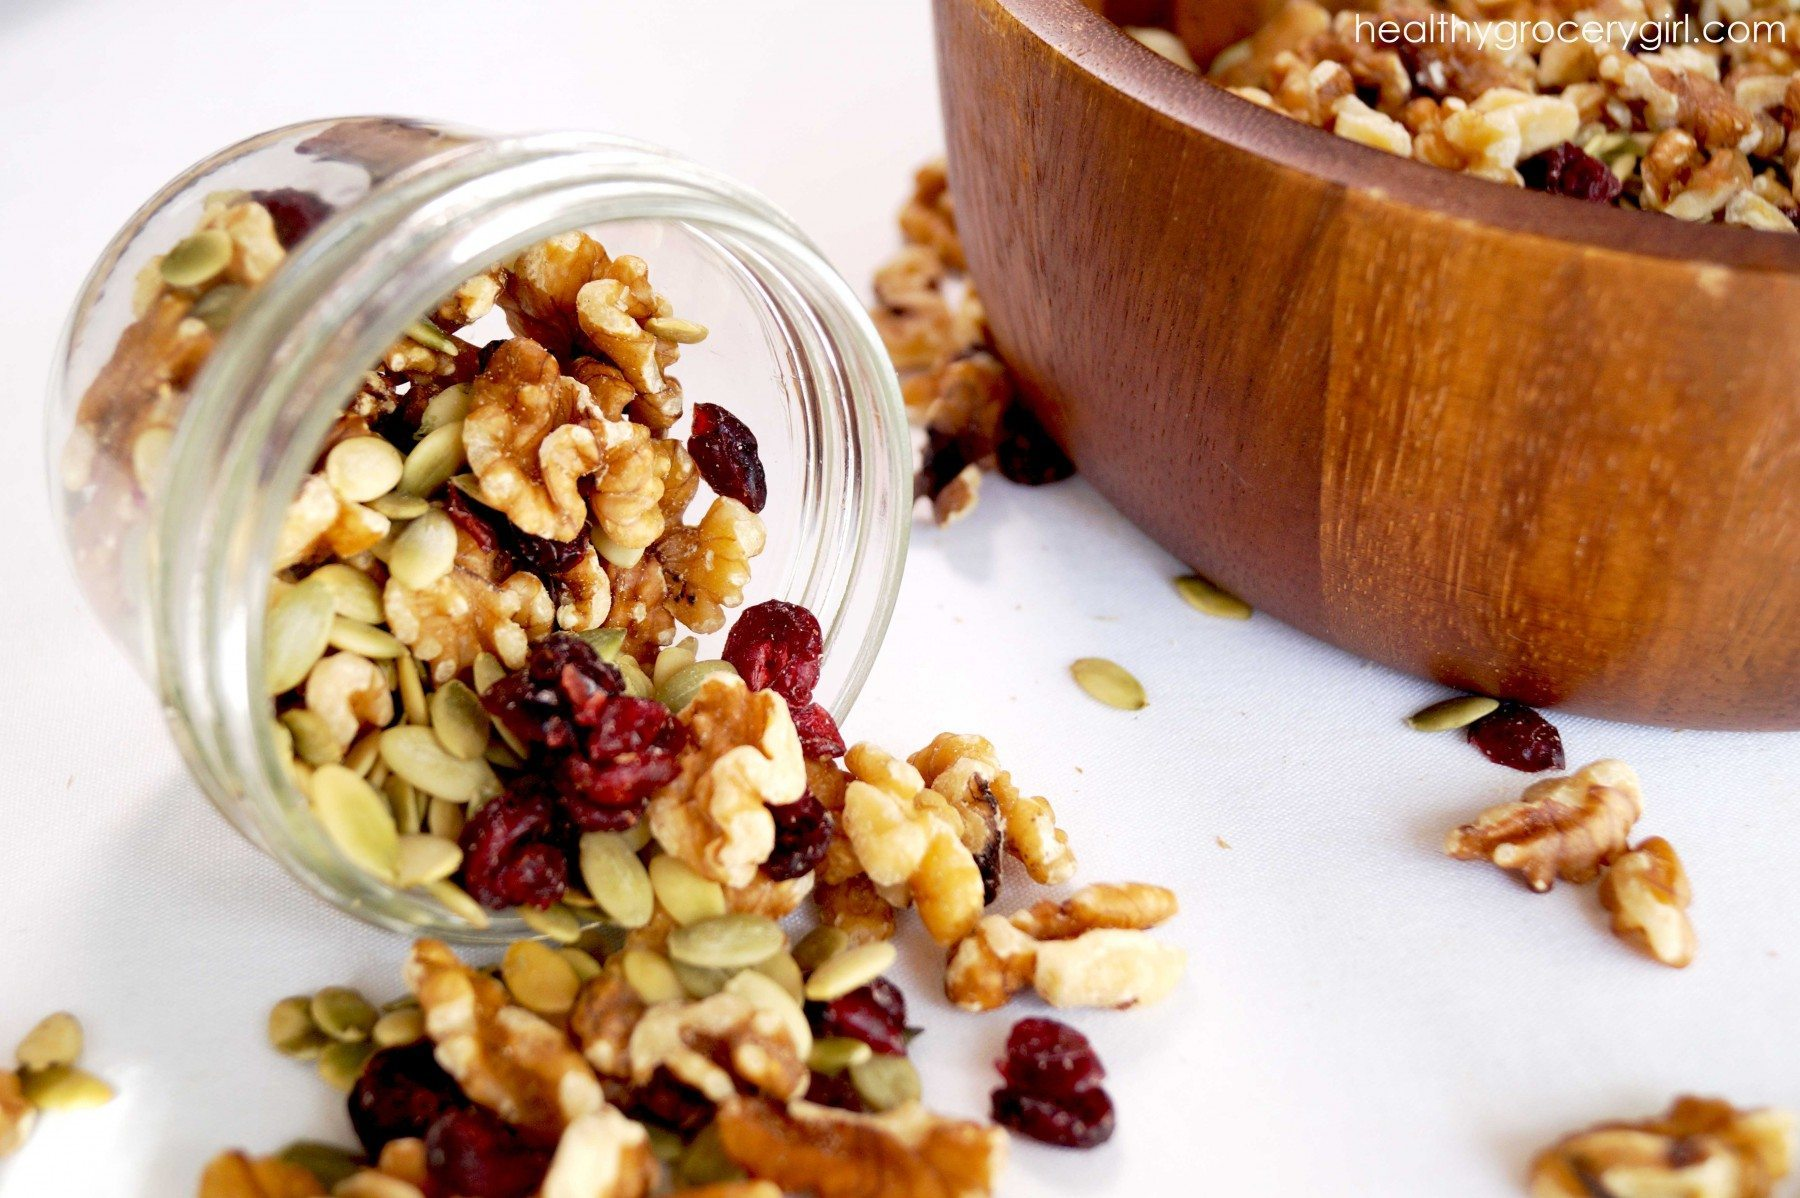 Fall trail mix spilling out featuring walnuts and dried berries